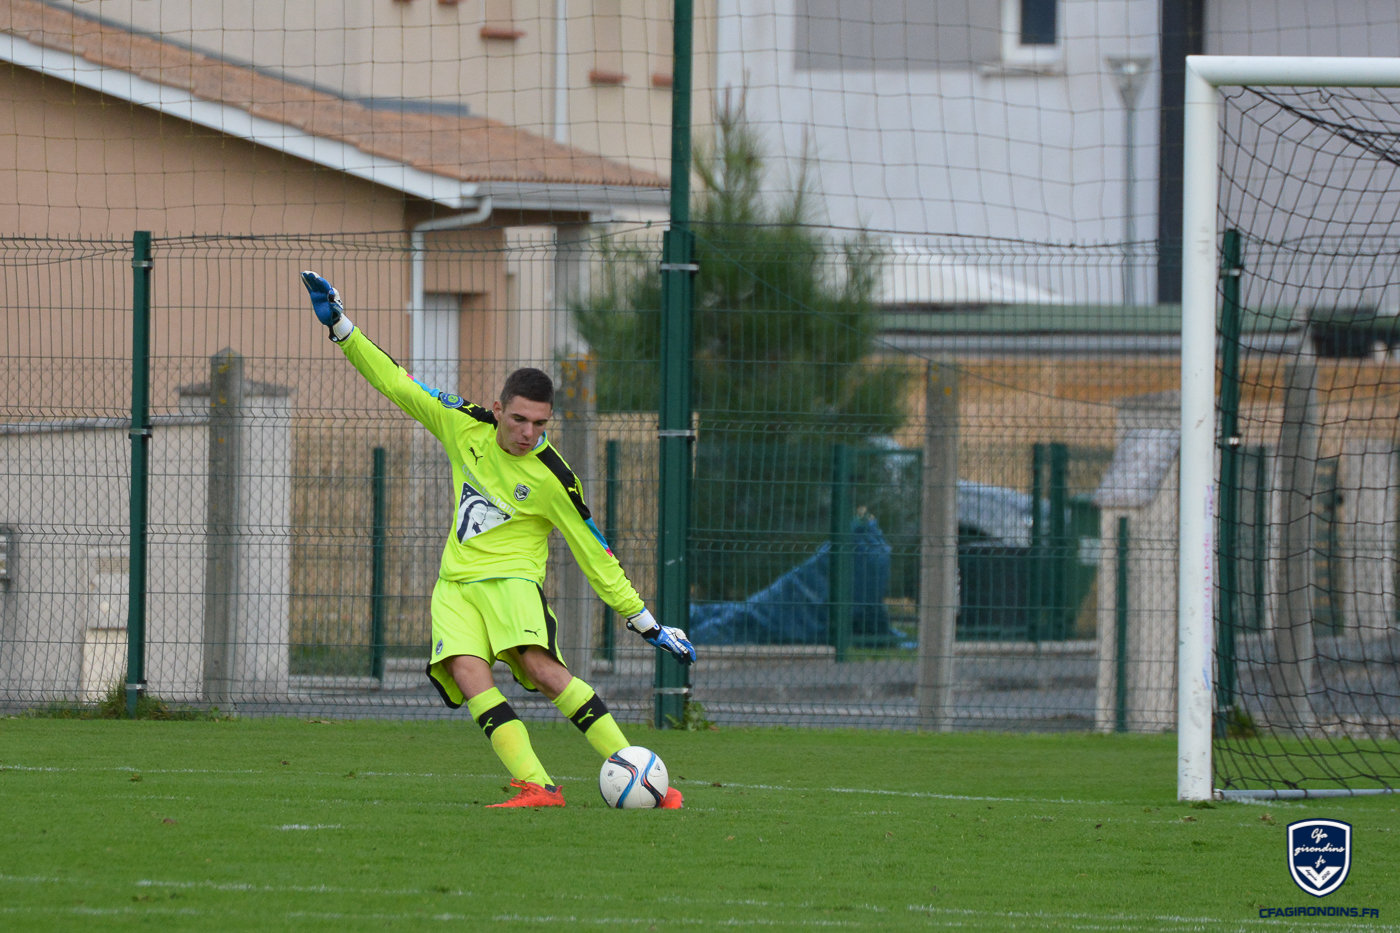 Cfa Girondins : Tommy Baup au RC Strasbourg - Formation Girondins